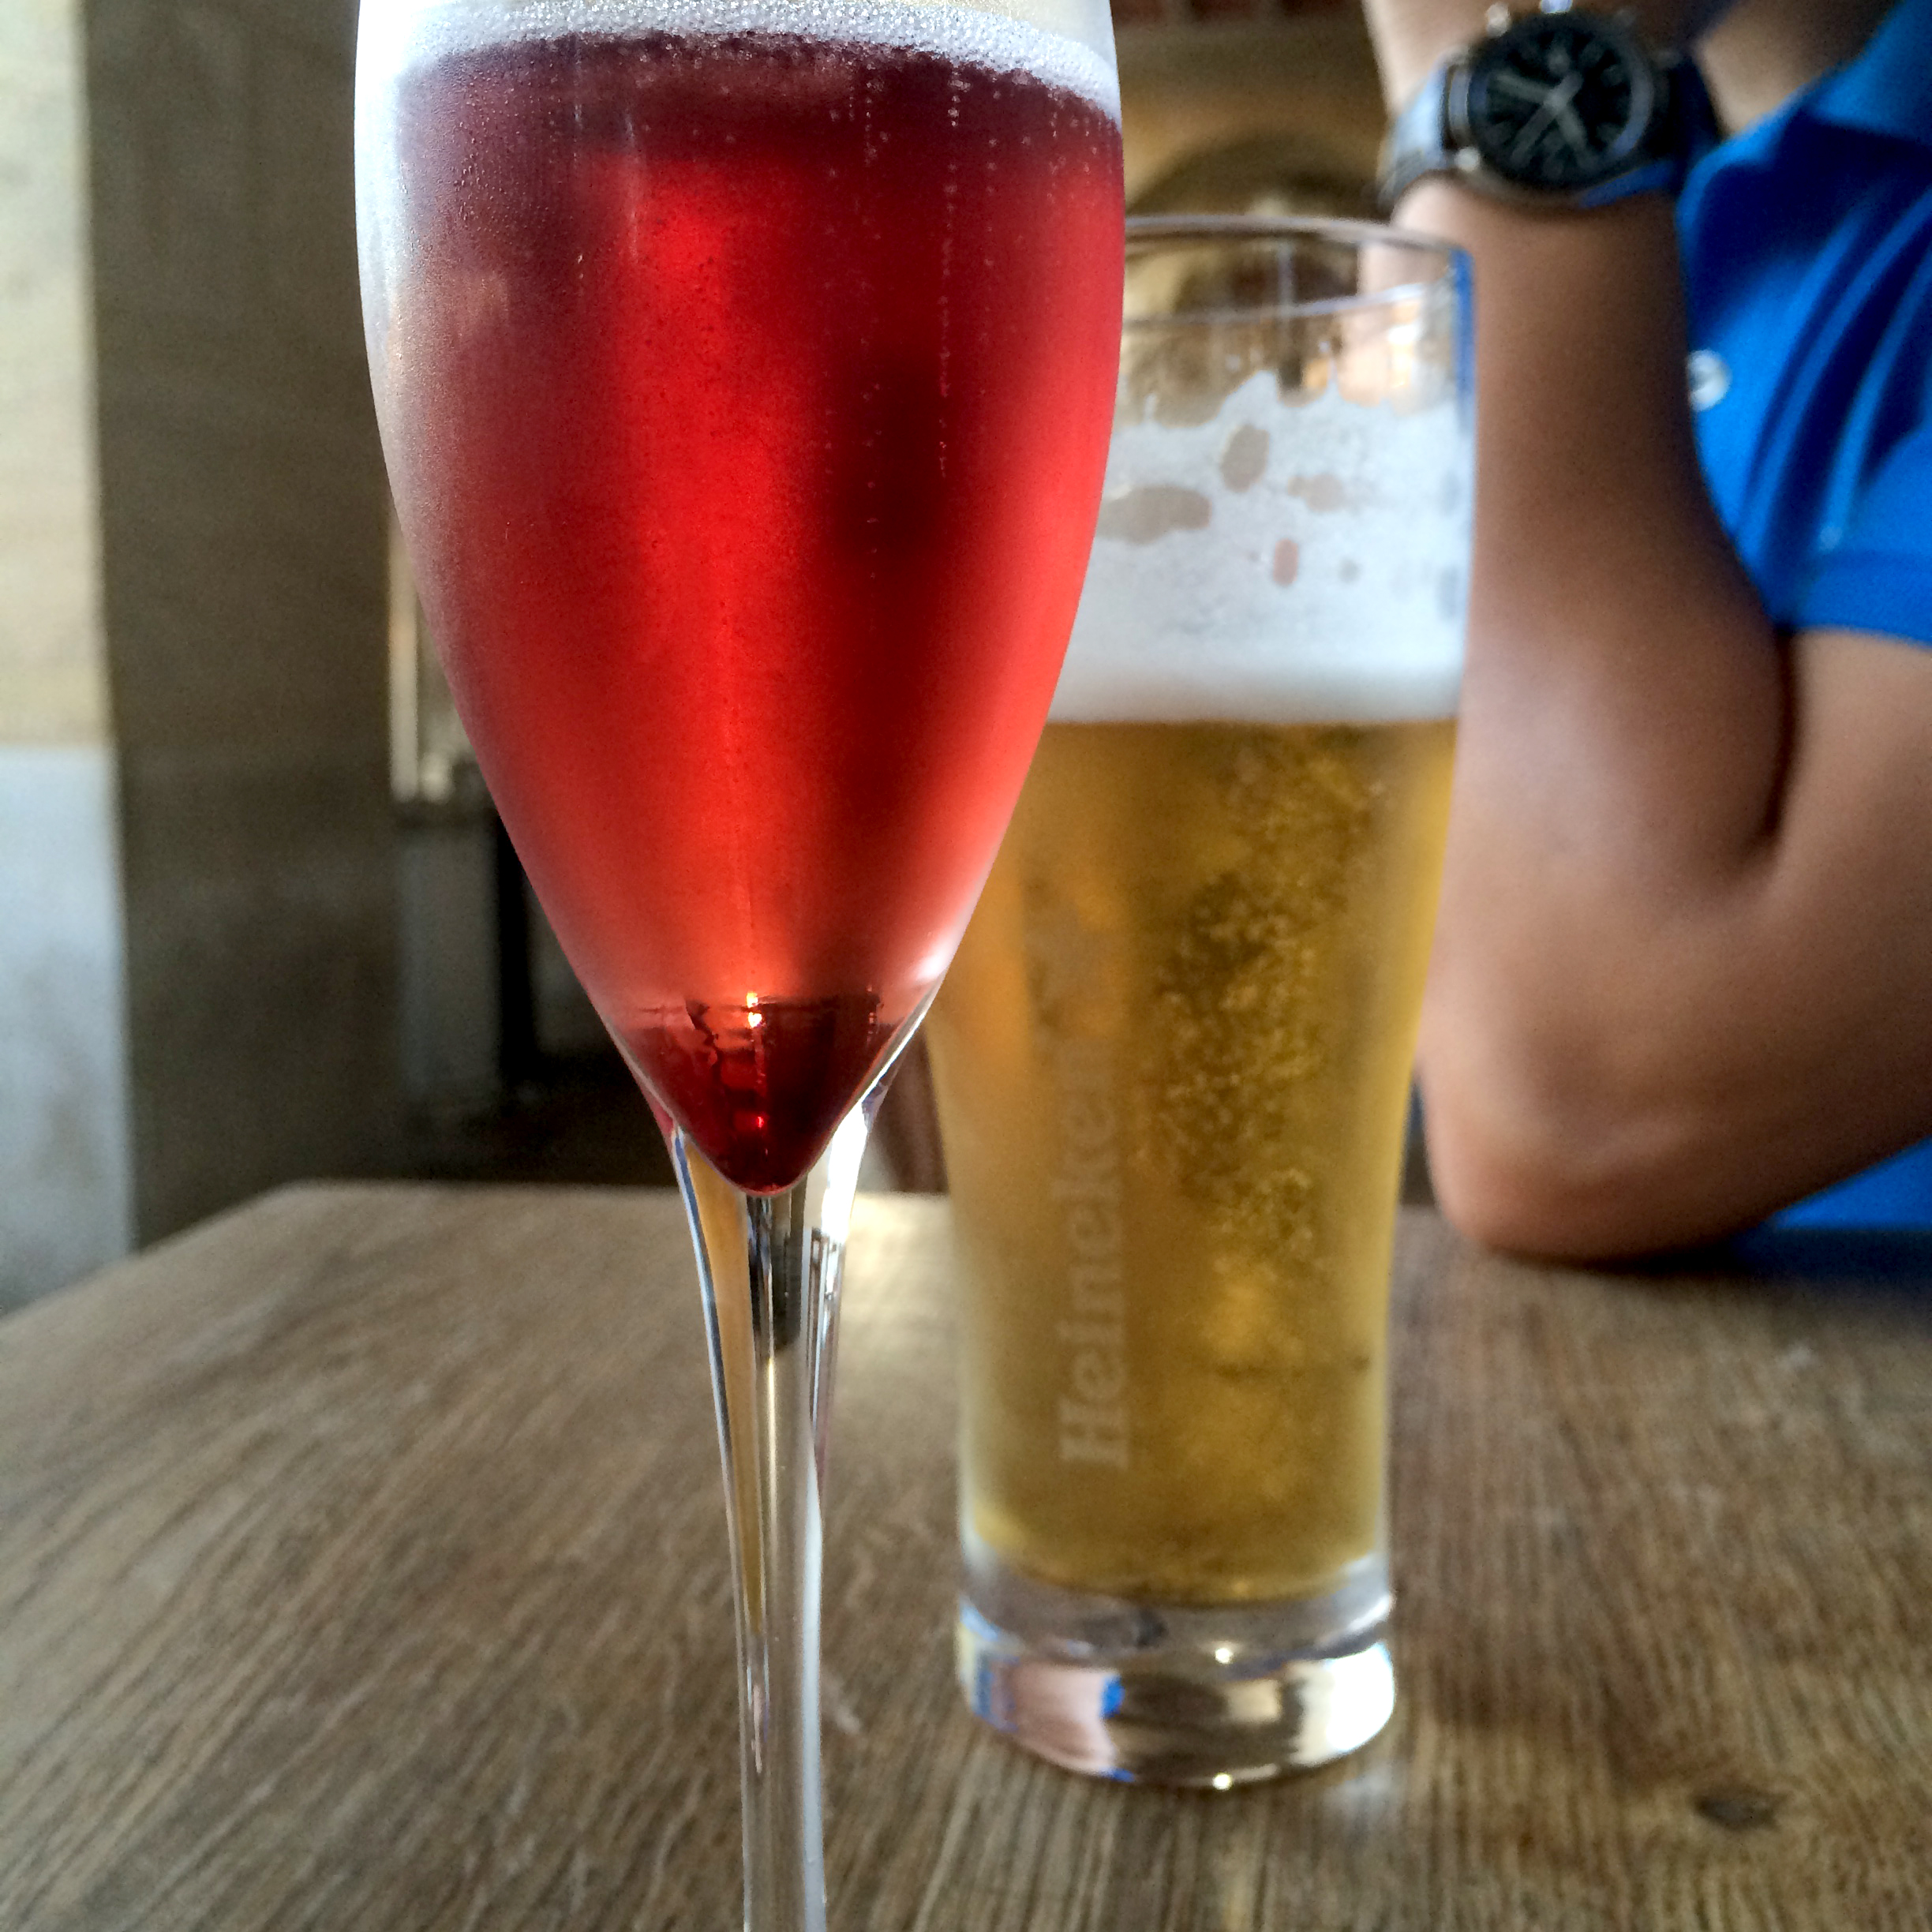 Kir for me and beer for Ky